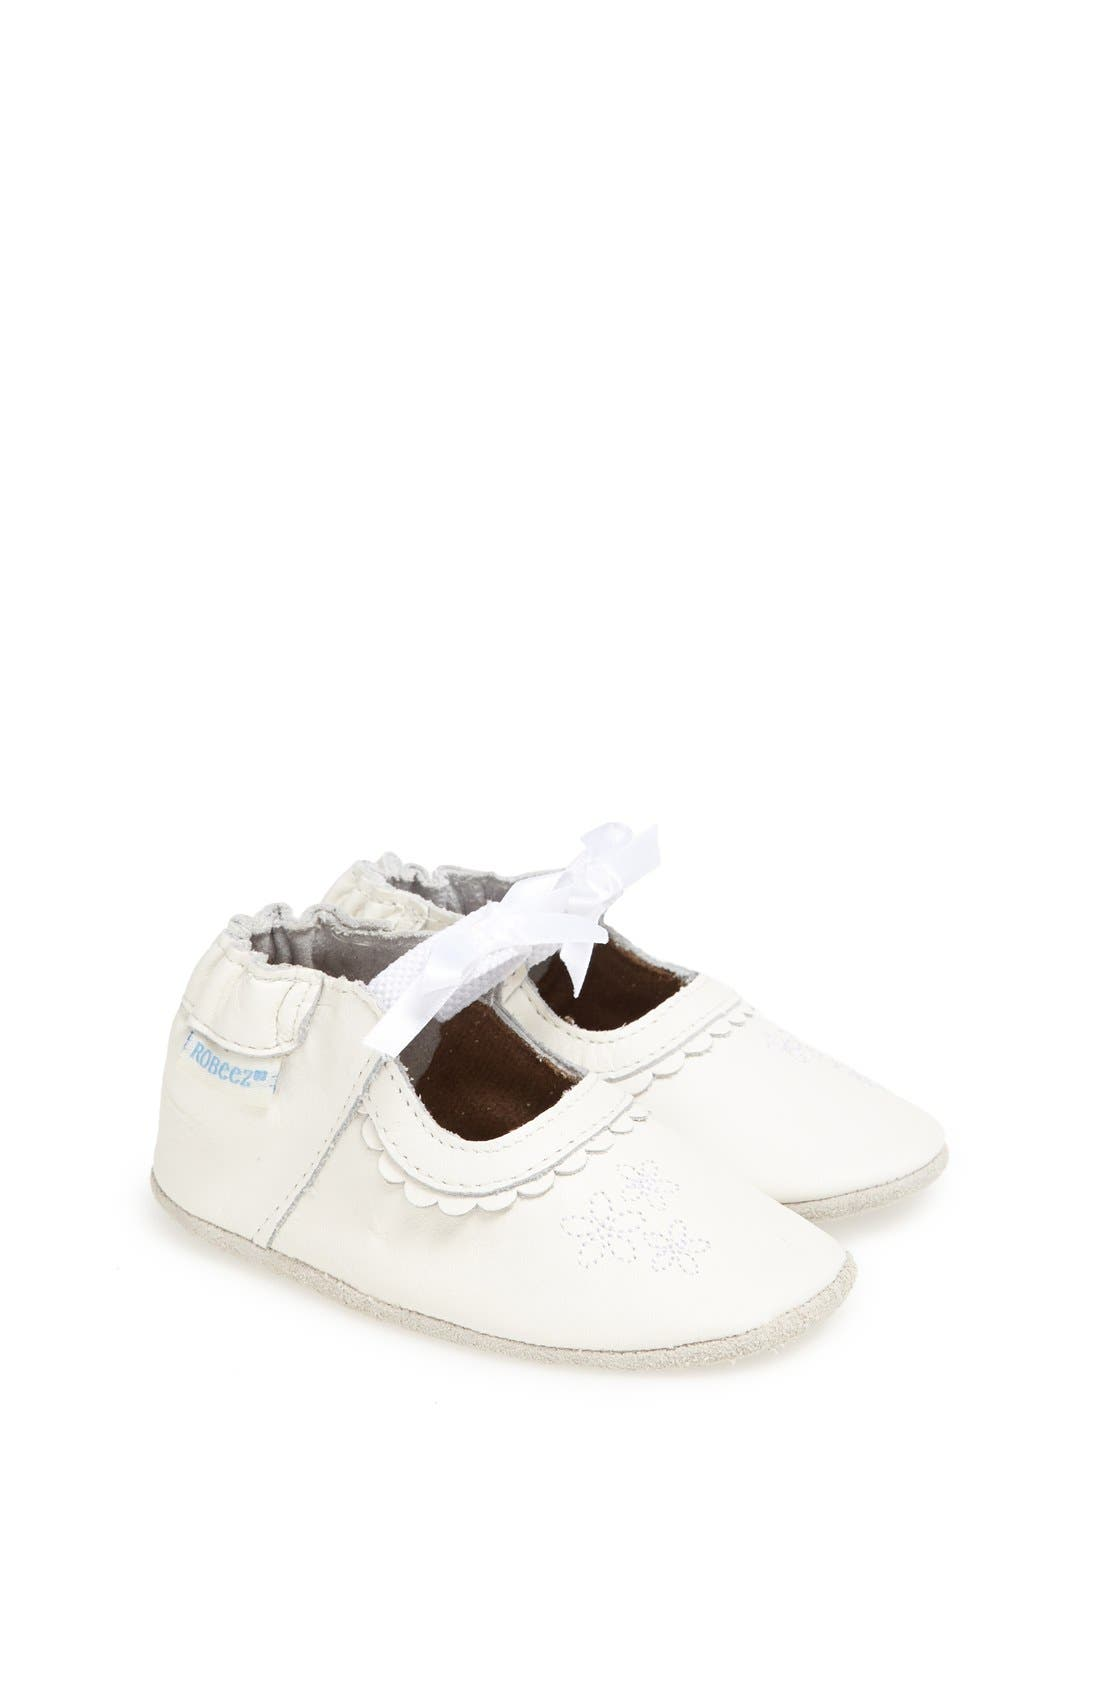 Main Image - Robeez® 'Special Occasion' Crib Shoe (Baby & Walker)